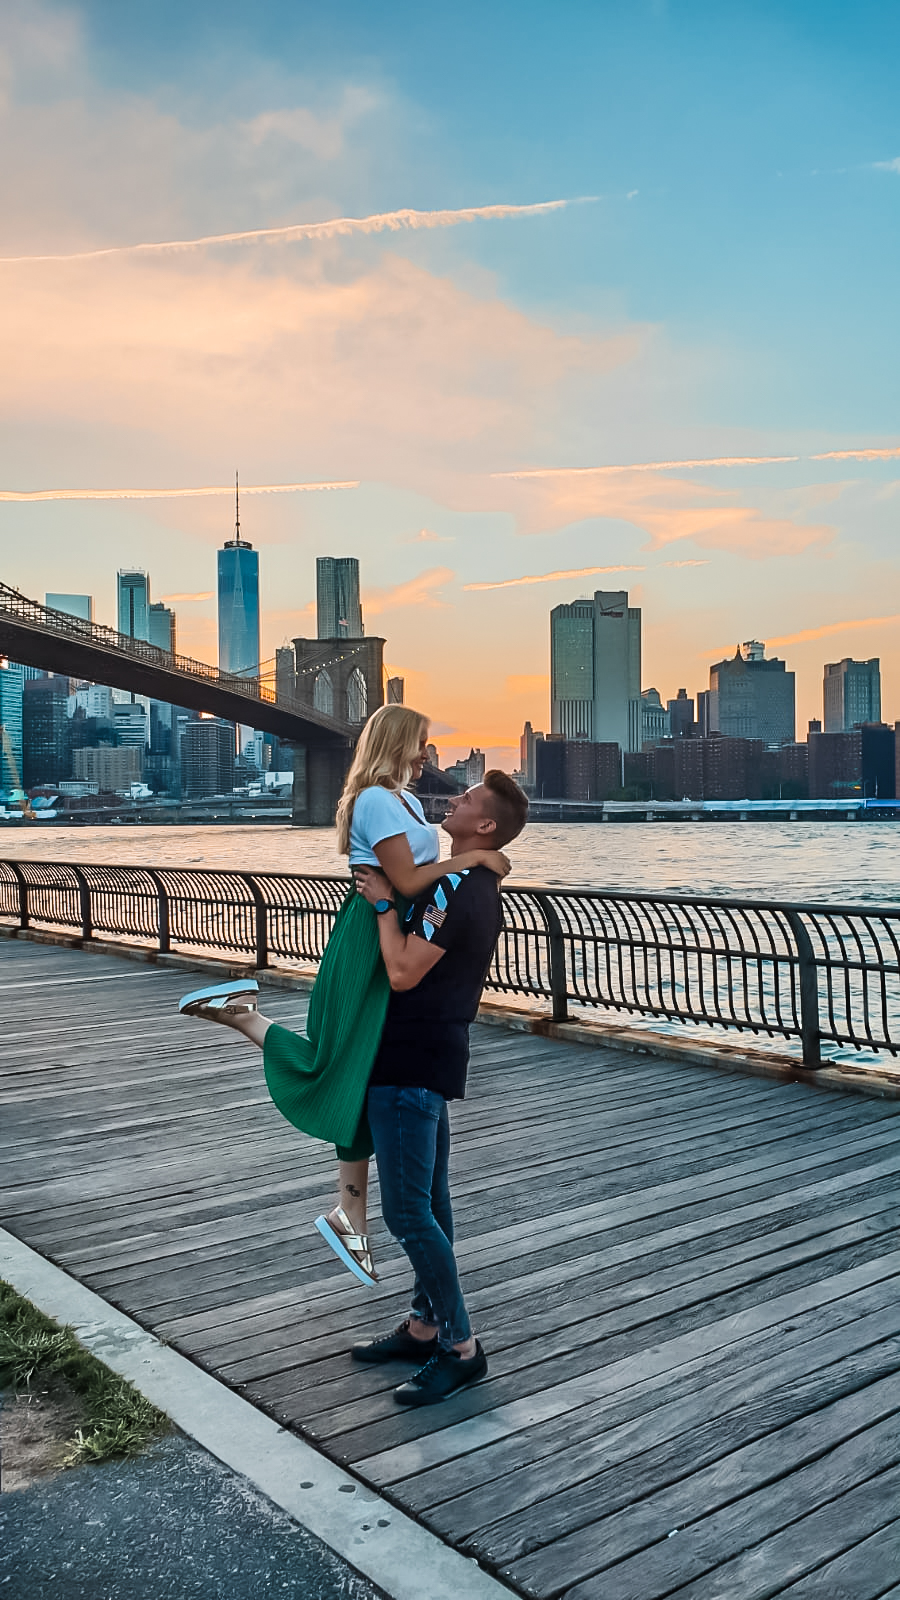 New York, Central Park, Empire State, Brooklyn Bridge, Katefully, Travelblog, Reisebericht, Sehenswürdigkeiten, Travelguide, Tipps, Top of the Rock, Big Apple